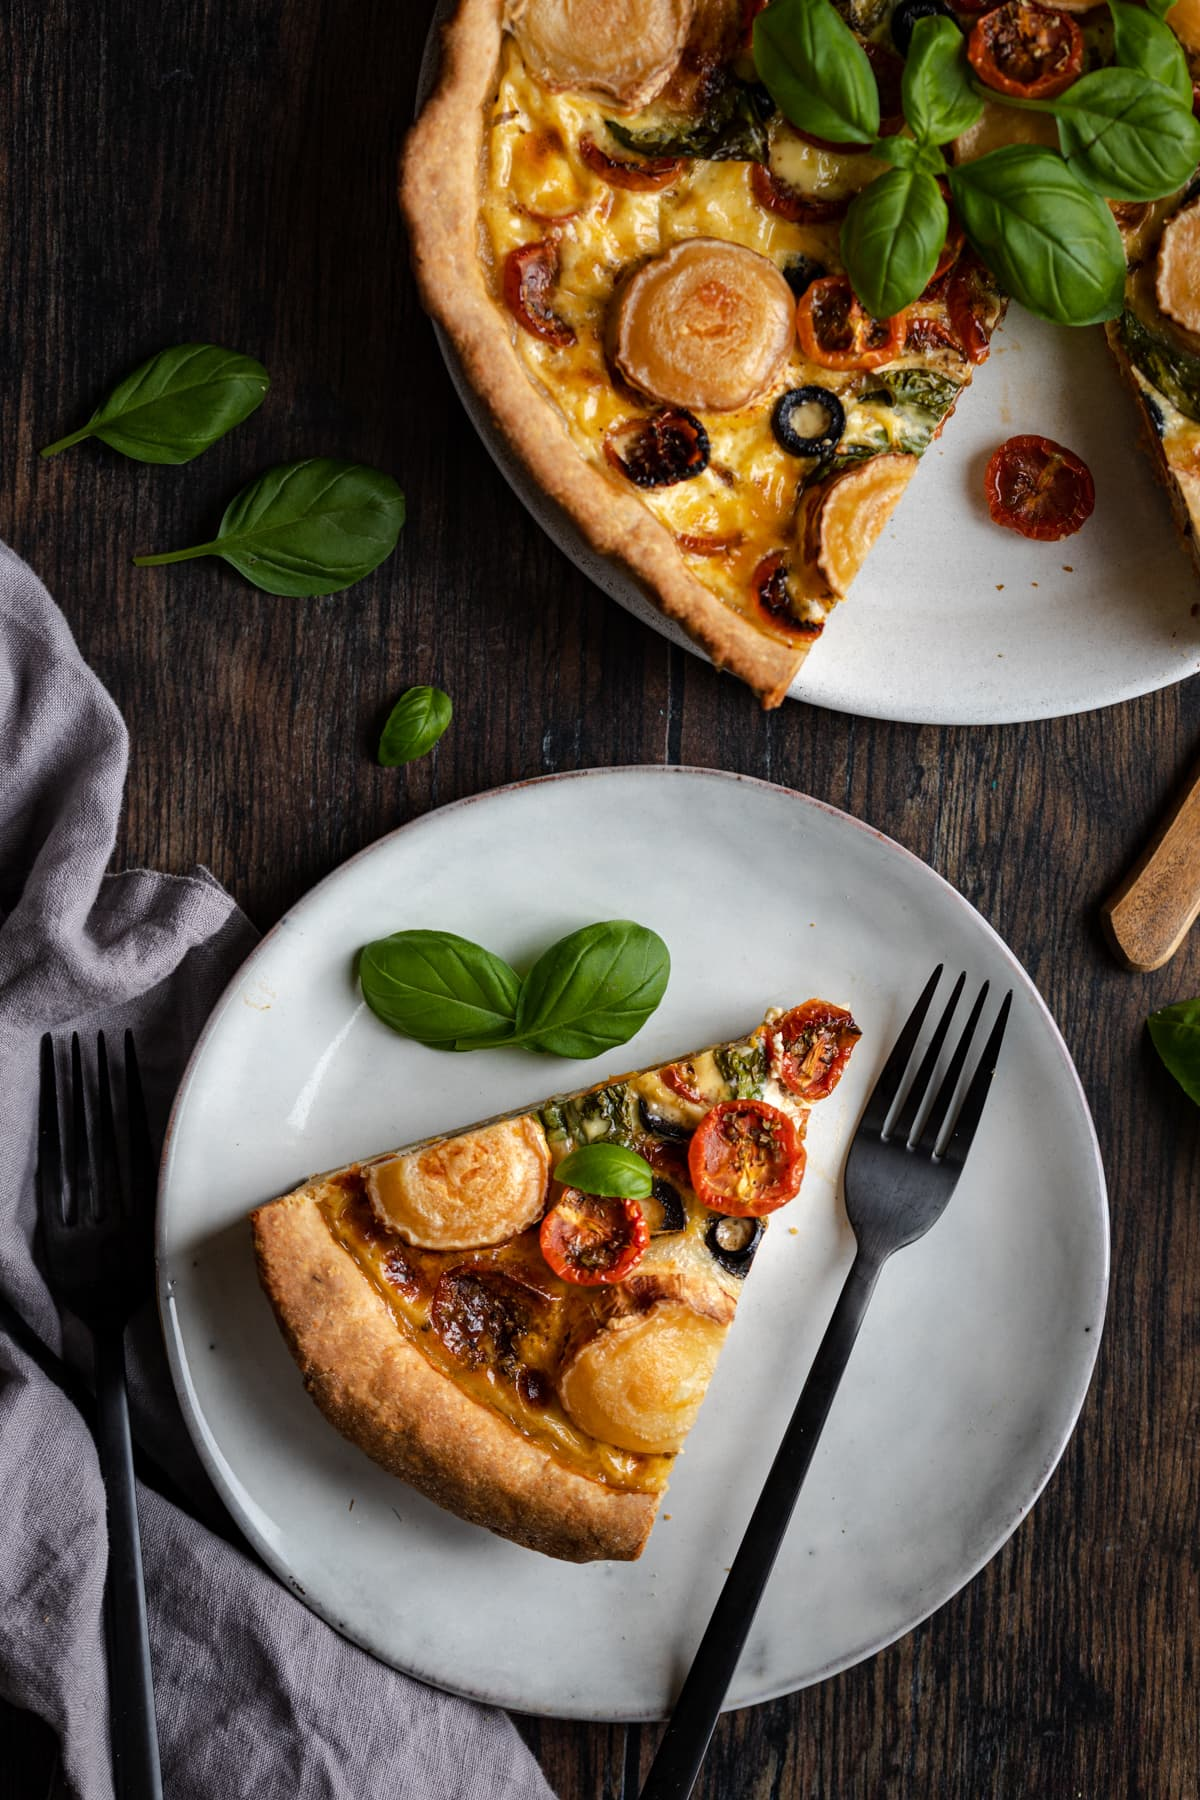 Goats cheese quiche with slow-roasted cherry tomatoes in a flaky homemade pastry.